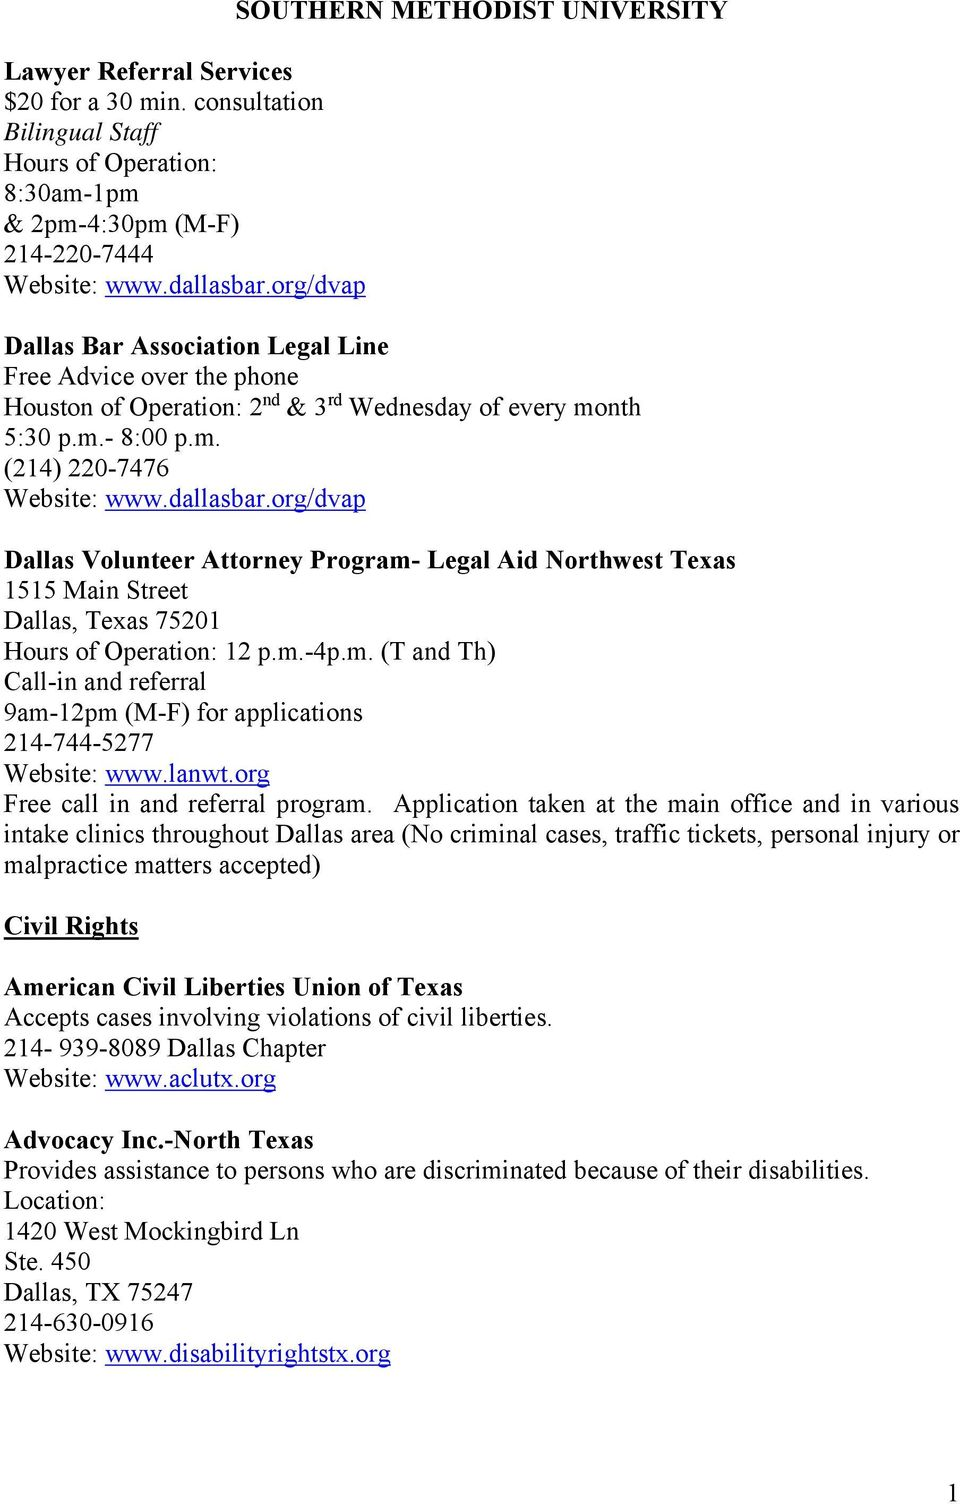 dallasbar.org/dvap Dallas Volunteer Attorney Program- Legal Aid Northwest Texas 1515 Main Street Dallas, Texas 75201 12 p.m.-4p.m. (T and Th) Call-in and referral 9am-12pm (M-F) for applications 214-744-5277 Website: www.